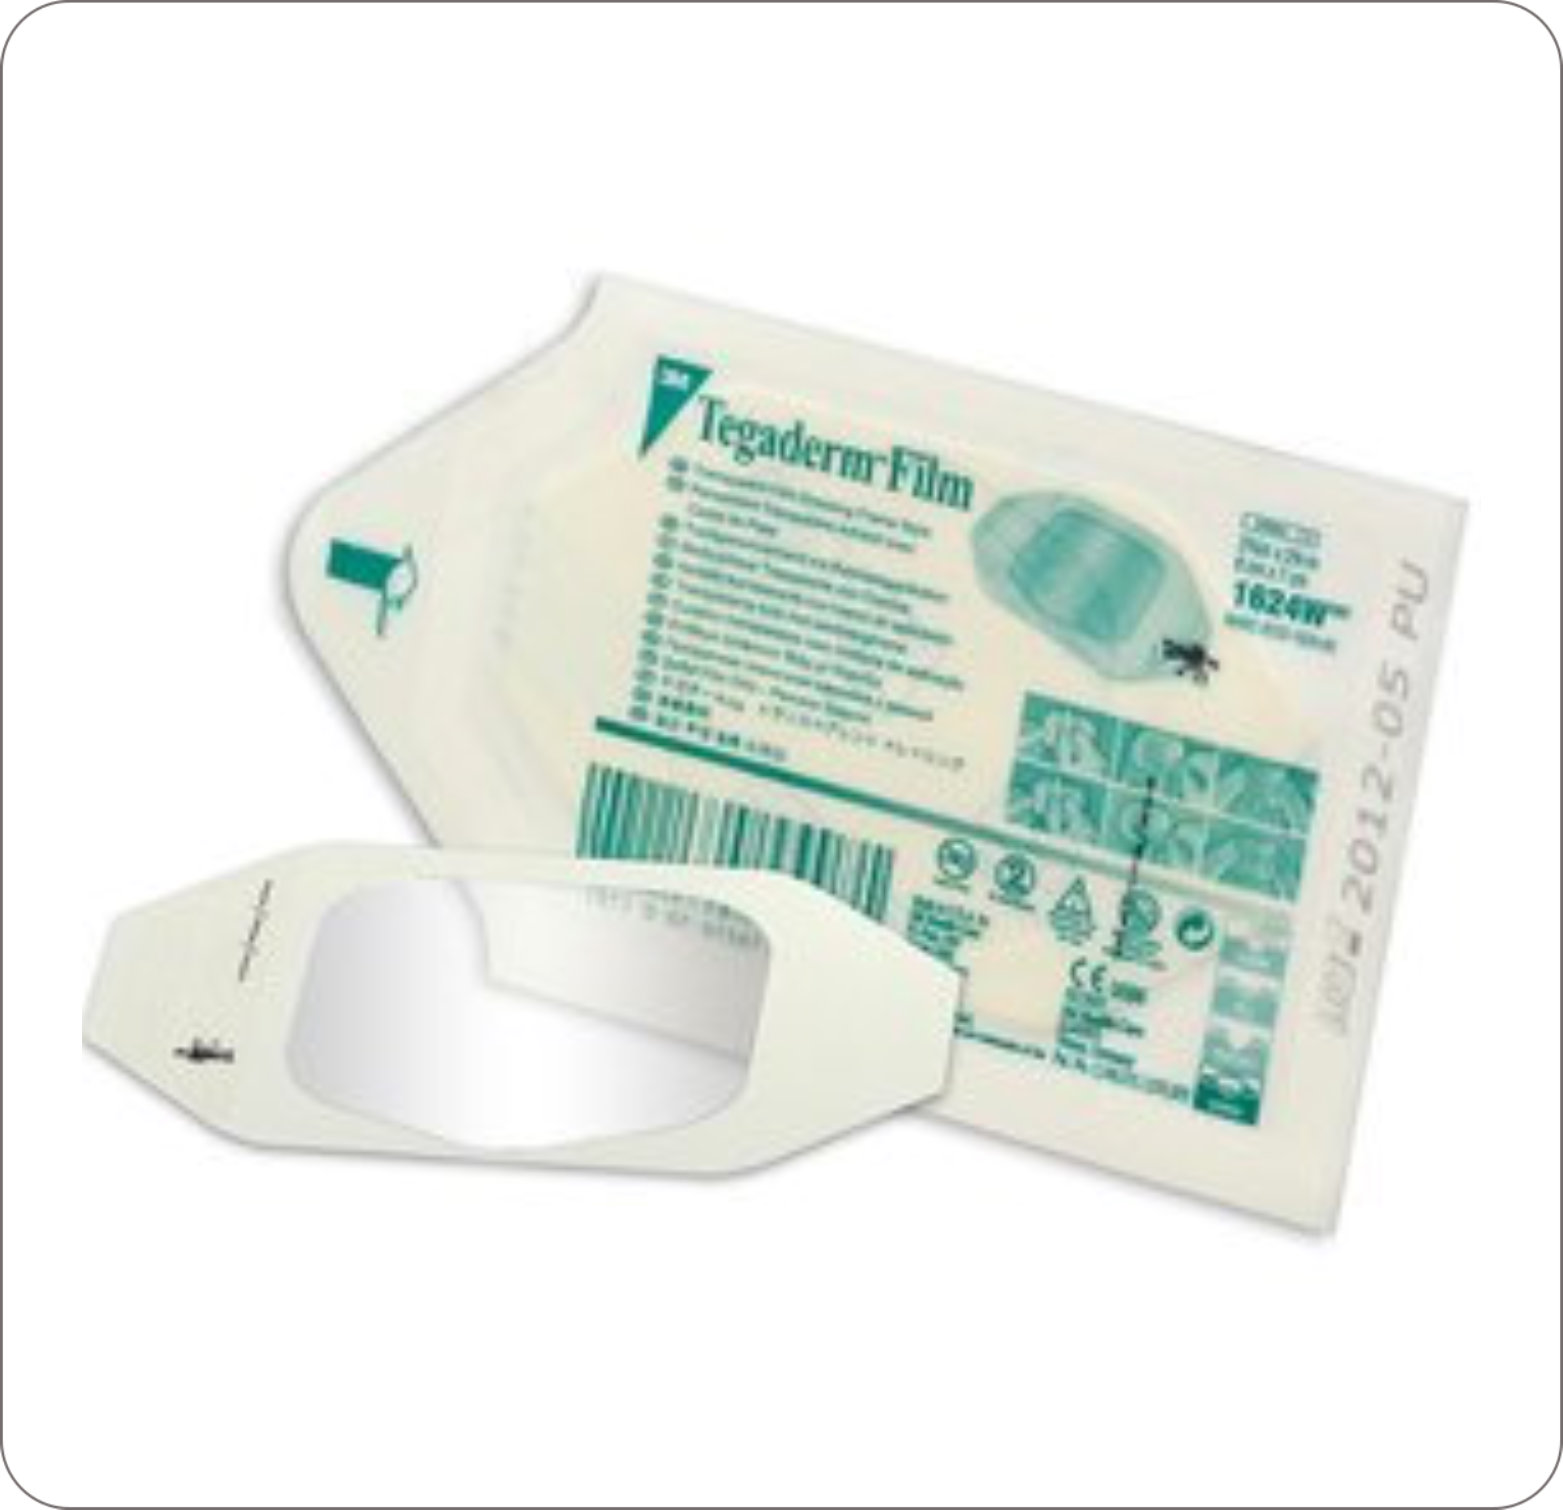 Dressing Transparent Film Tegaderm 1624W